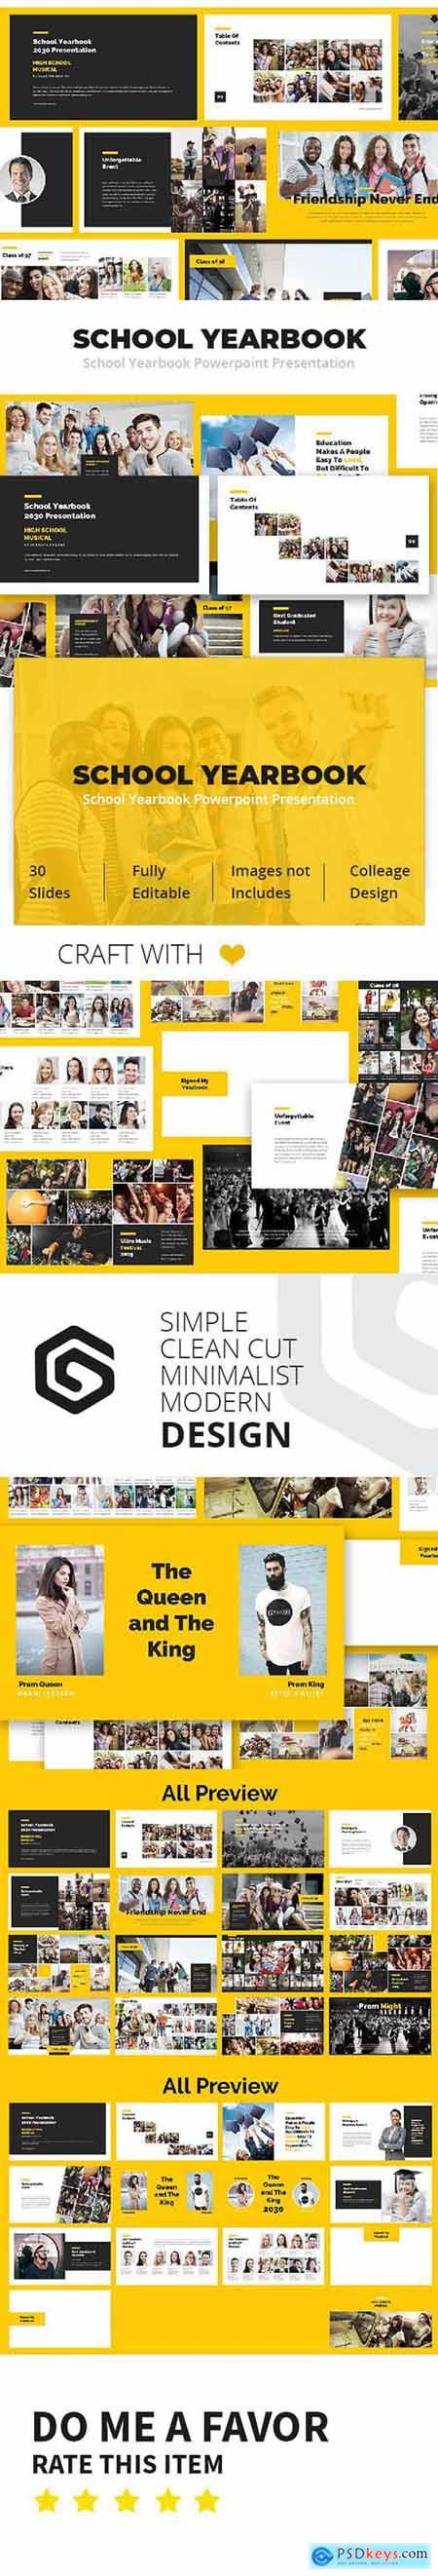 Graphicriver School Yearbook Powerpoint Presentation